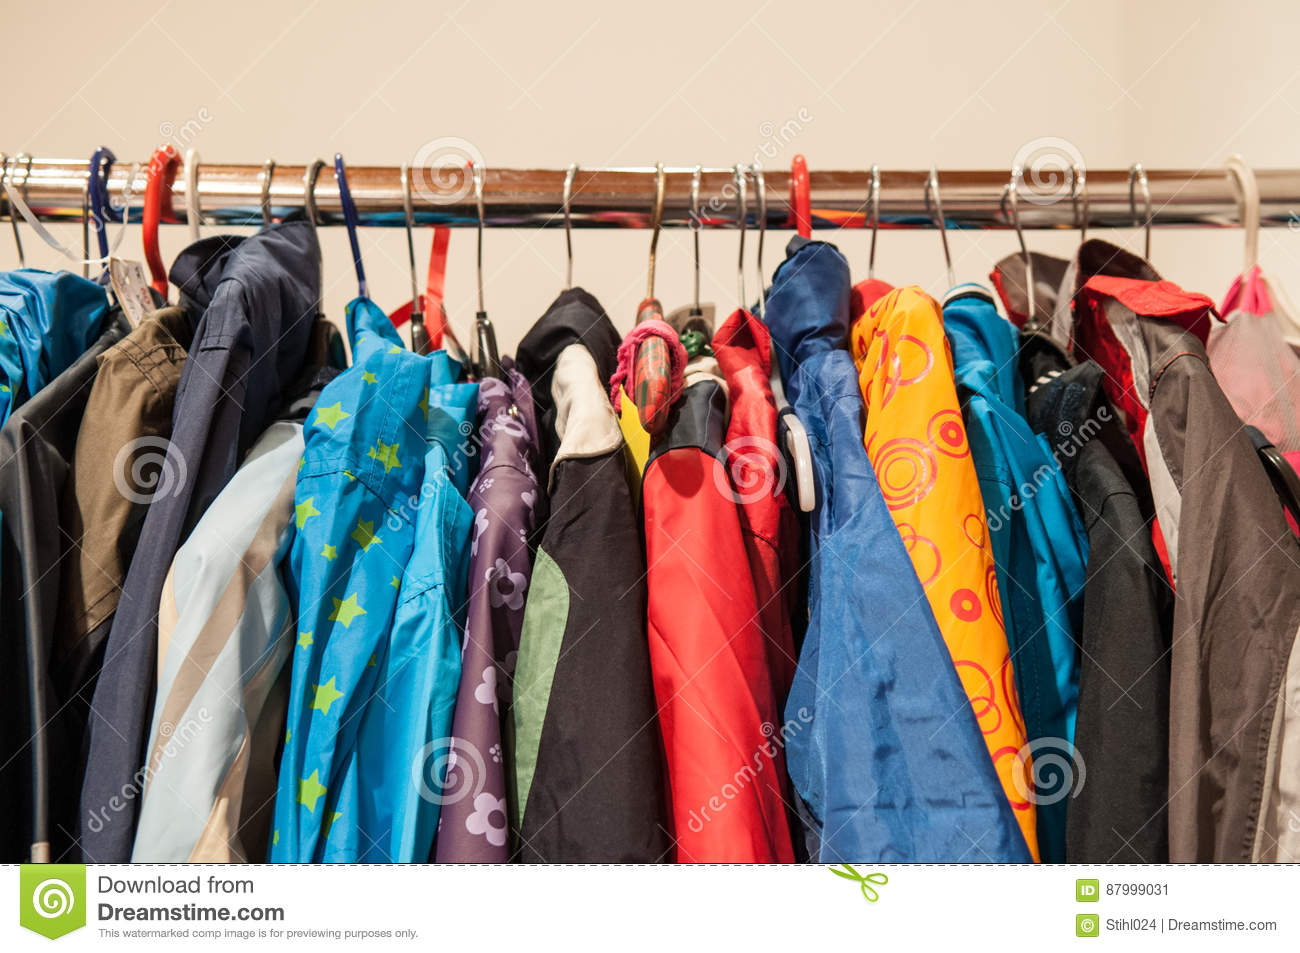 aea86c173bf7 2nd Hand Clothes On Hangers Stock Image - Image of childrens